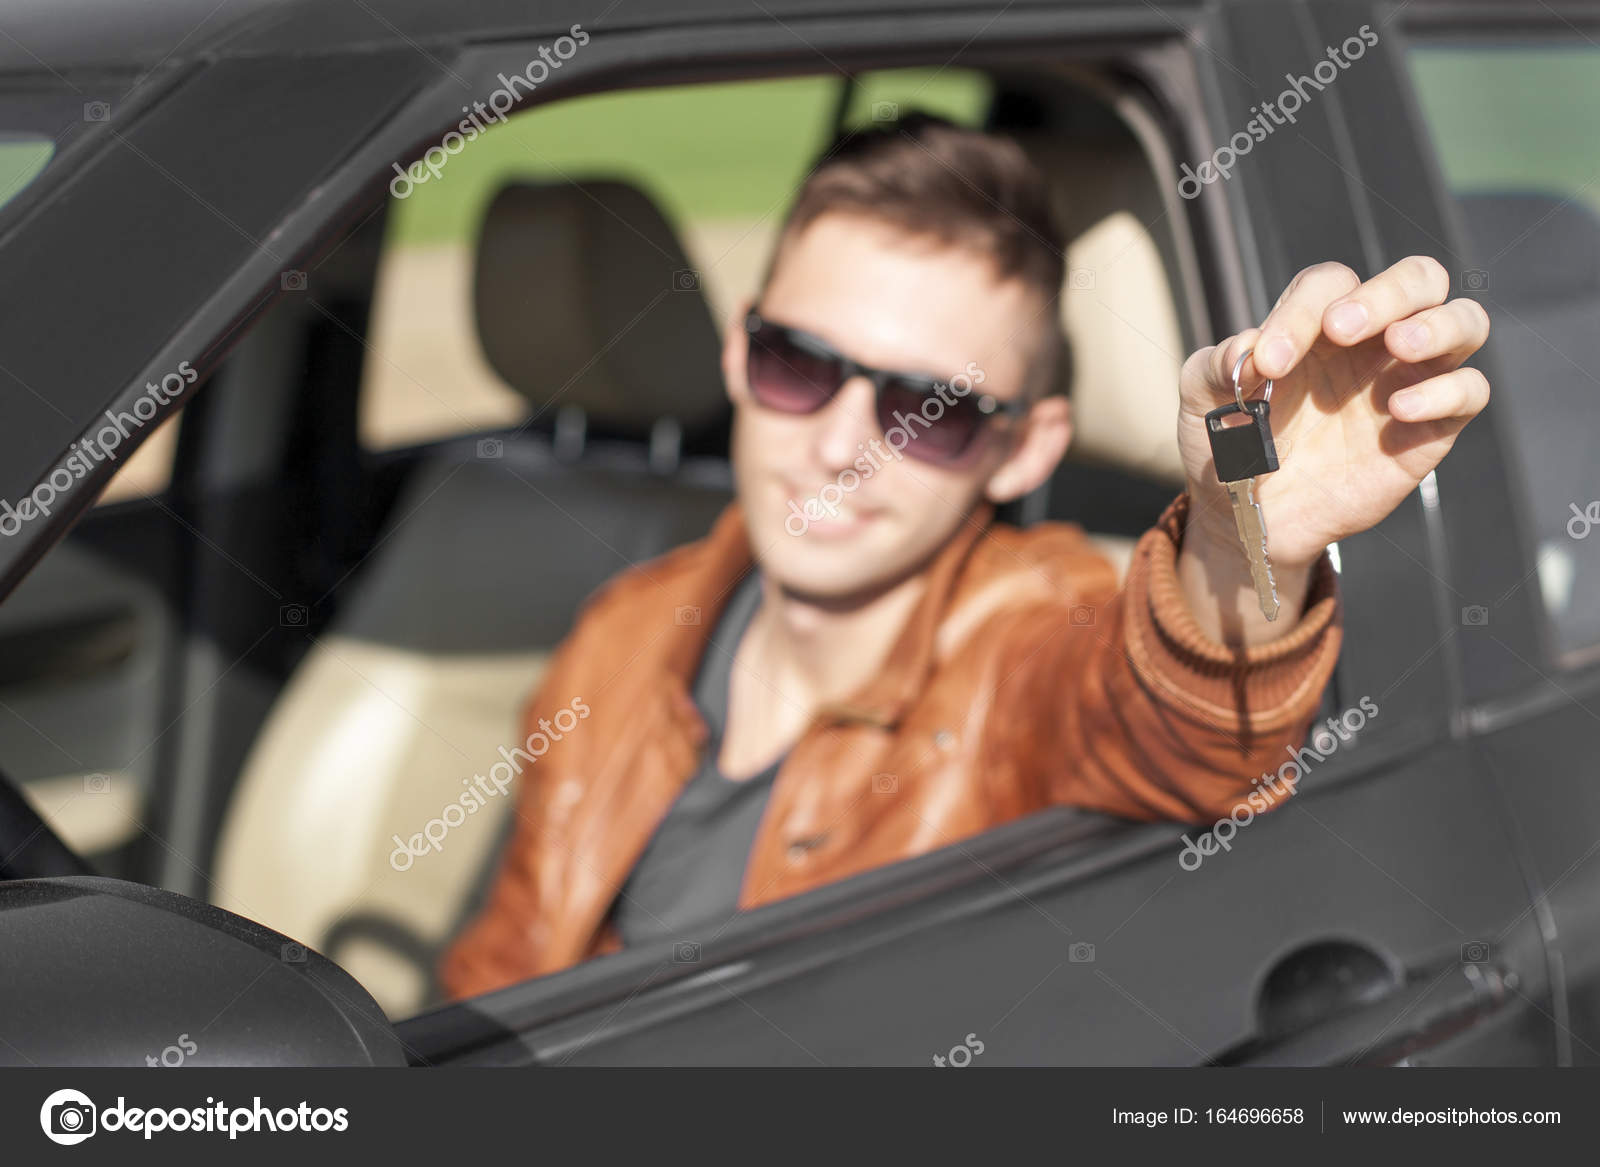 Delicieux Young Man In Car Showing Keys U2014 Stock Photo #164696658